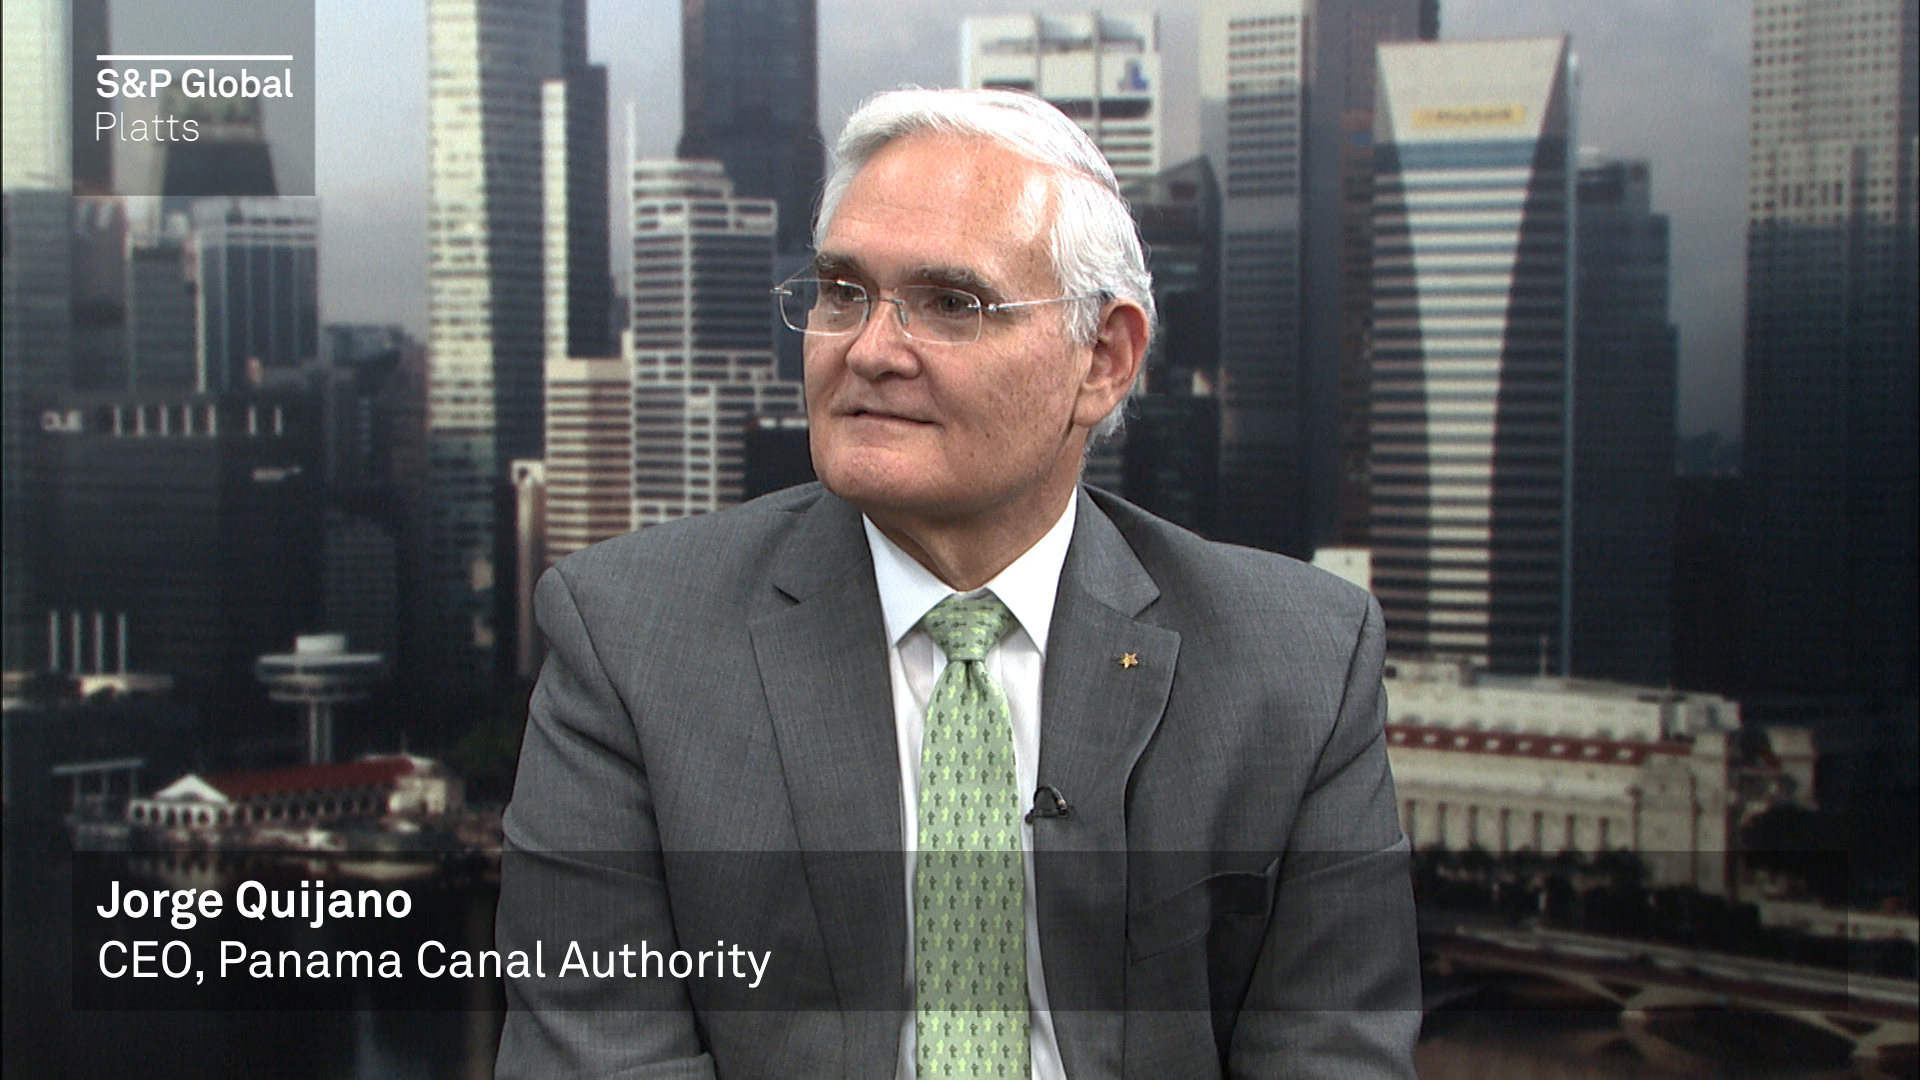 Insight Conversation with Jorge Quijano, Panama Canal Authority CEO